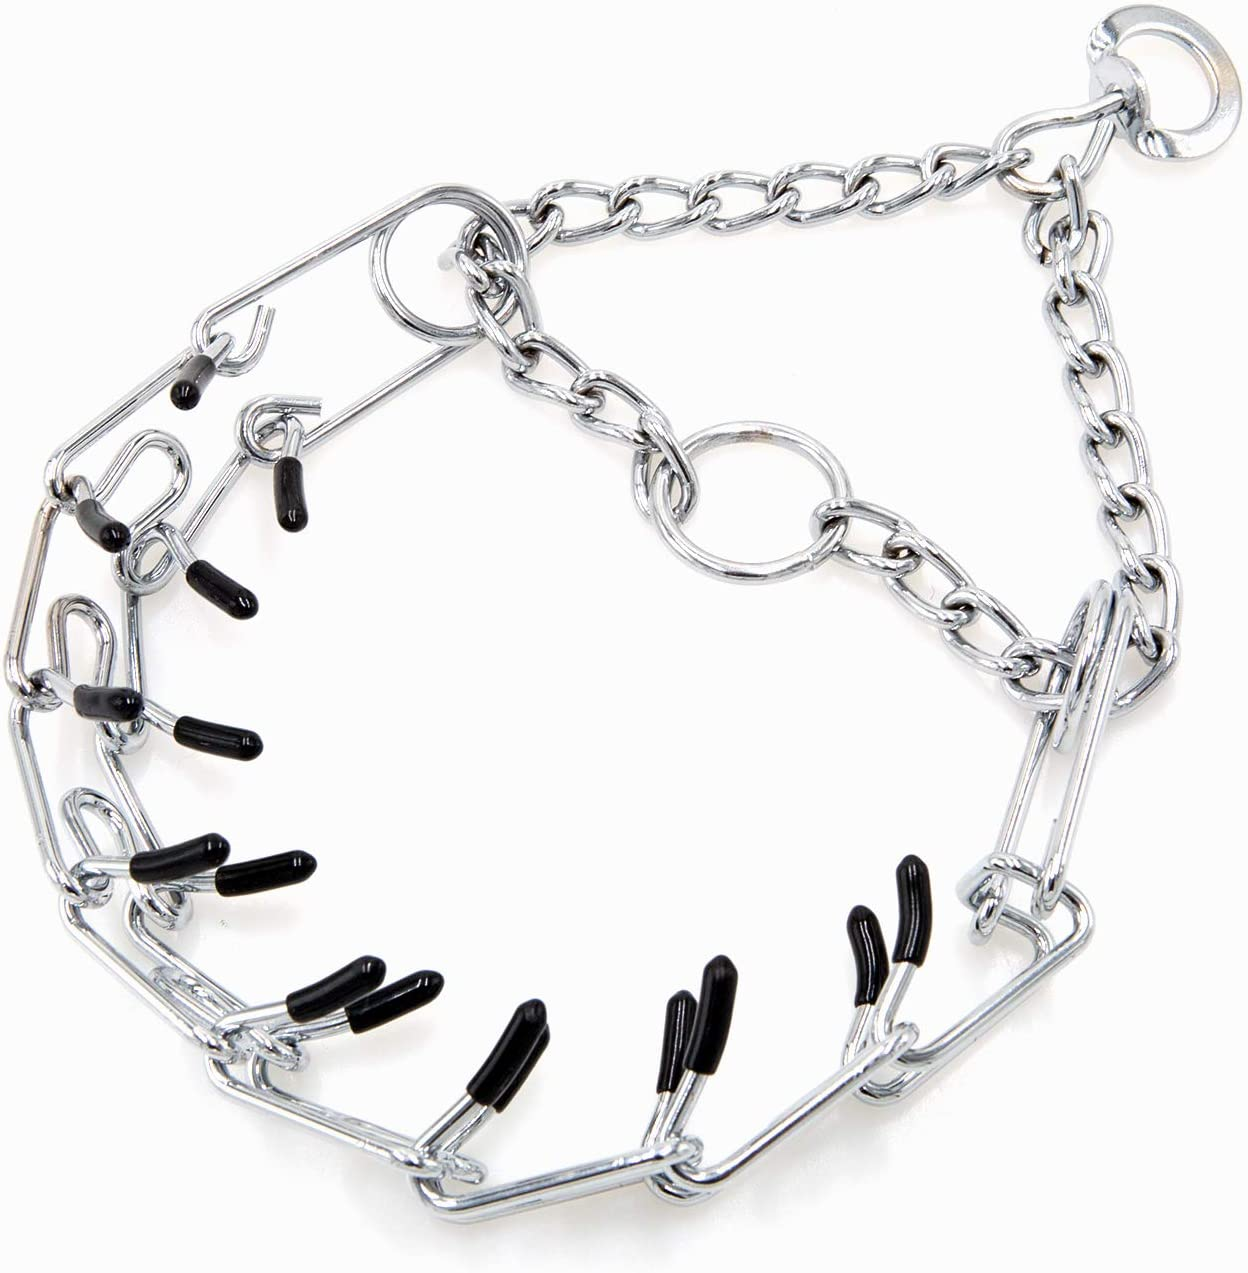 Dog Prong Collar Classic free shipping Regular store Stainless Pinch Choke Chain Steel